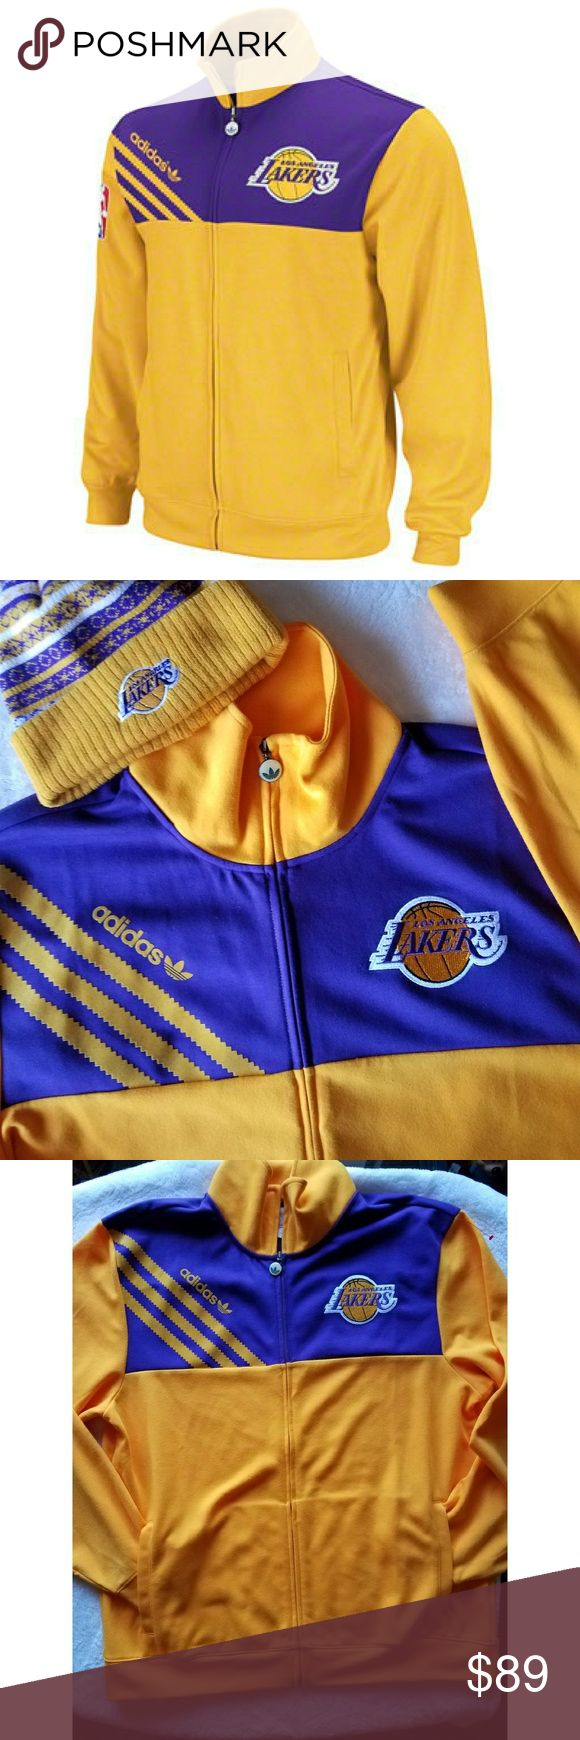 NBA Adidas Lakers Track Jacket Laker Fans This gold Adidas Lakers jacket is great for any Laker fan!   85% Polyester 15% cotton  2 front pockets, no holes In great condition, the only problem is on the right cuff there's a small stain due to handling, as shown in the last picture.  Feel free to send me any reasonable offers ☺ The jacket is new, just got stained from being handled. adidas Jackets & Coats